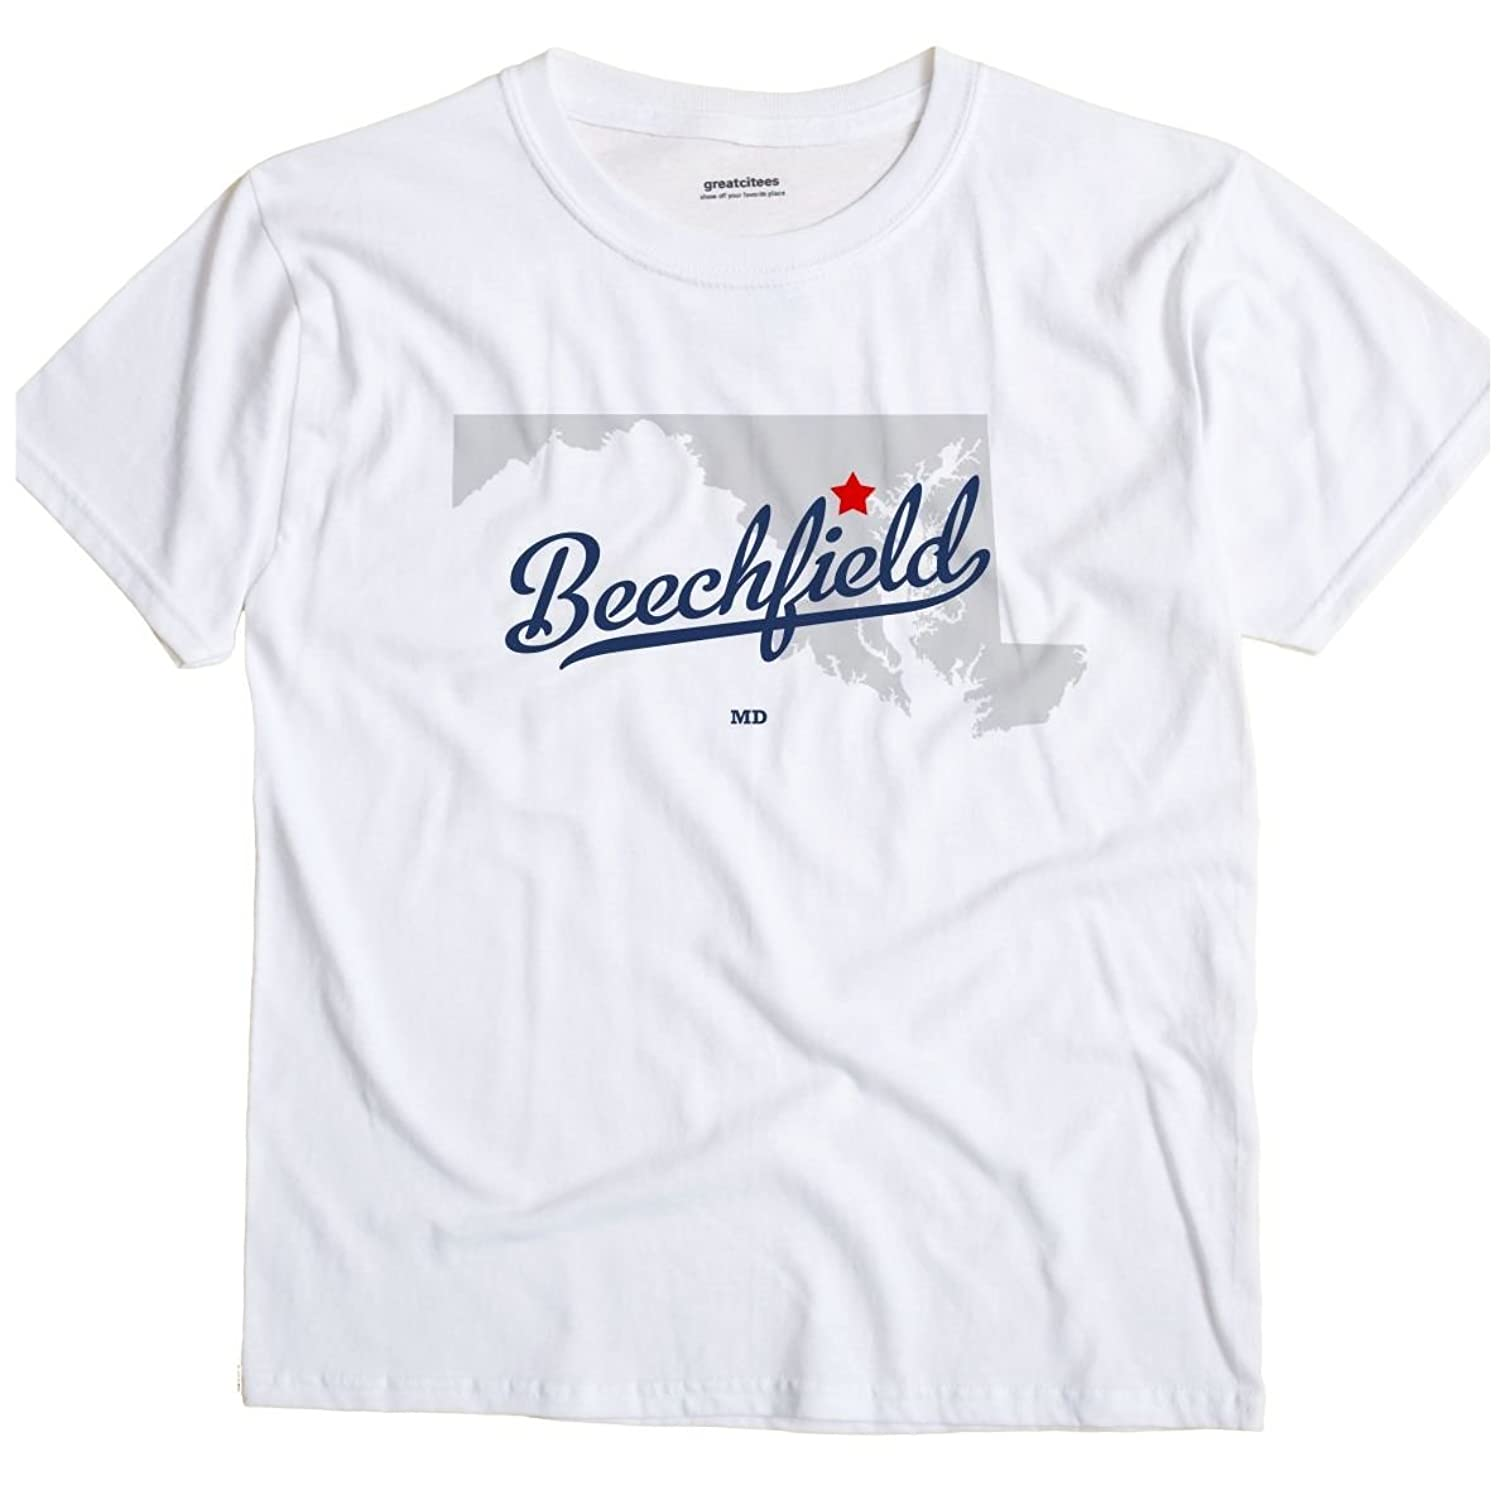 Beechfield Maryland MD, Neighborhood of Baltimore MAP GreatCitees T Shirt